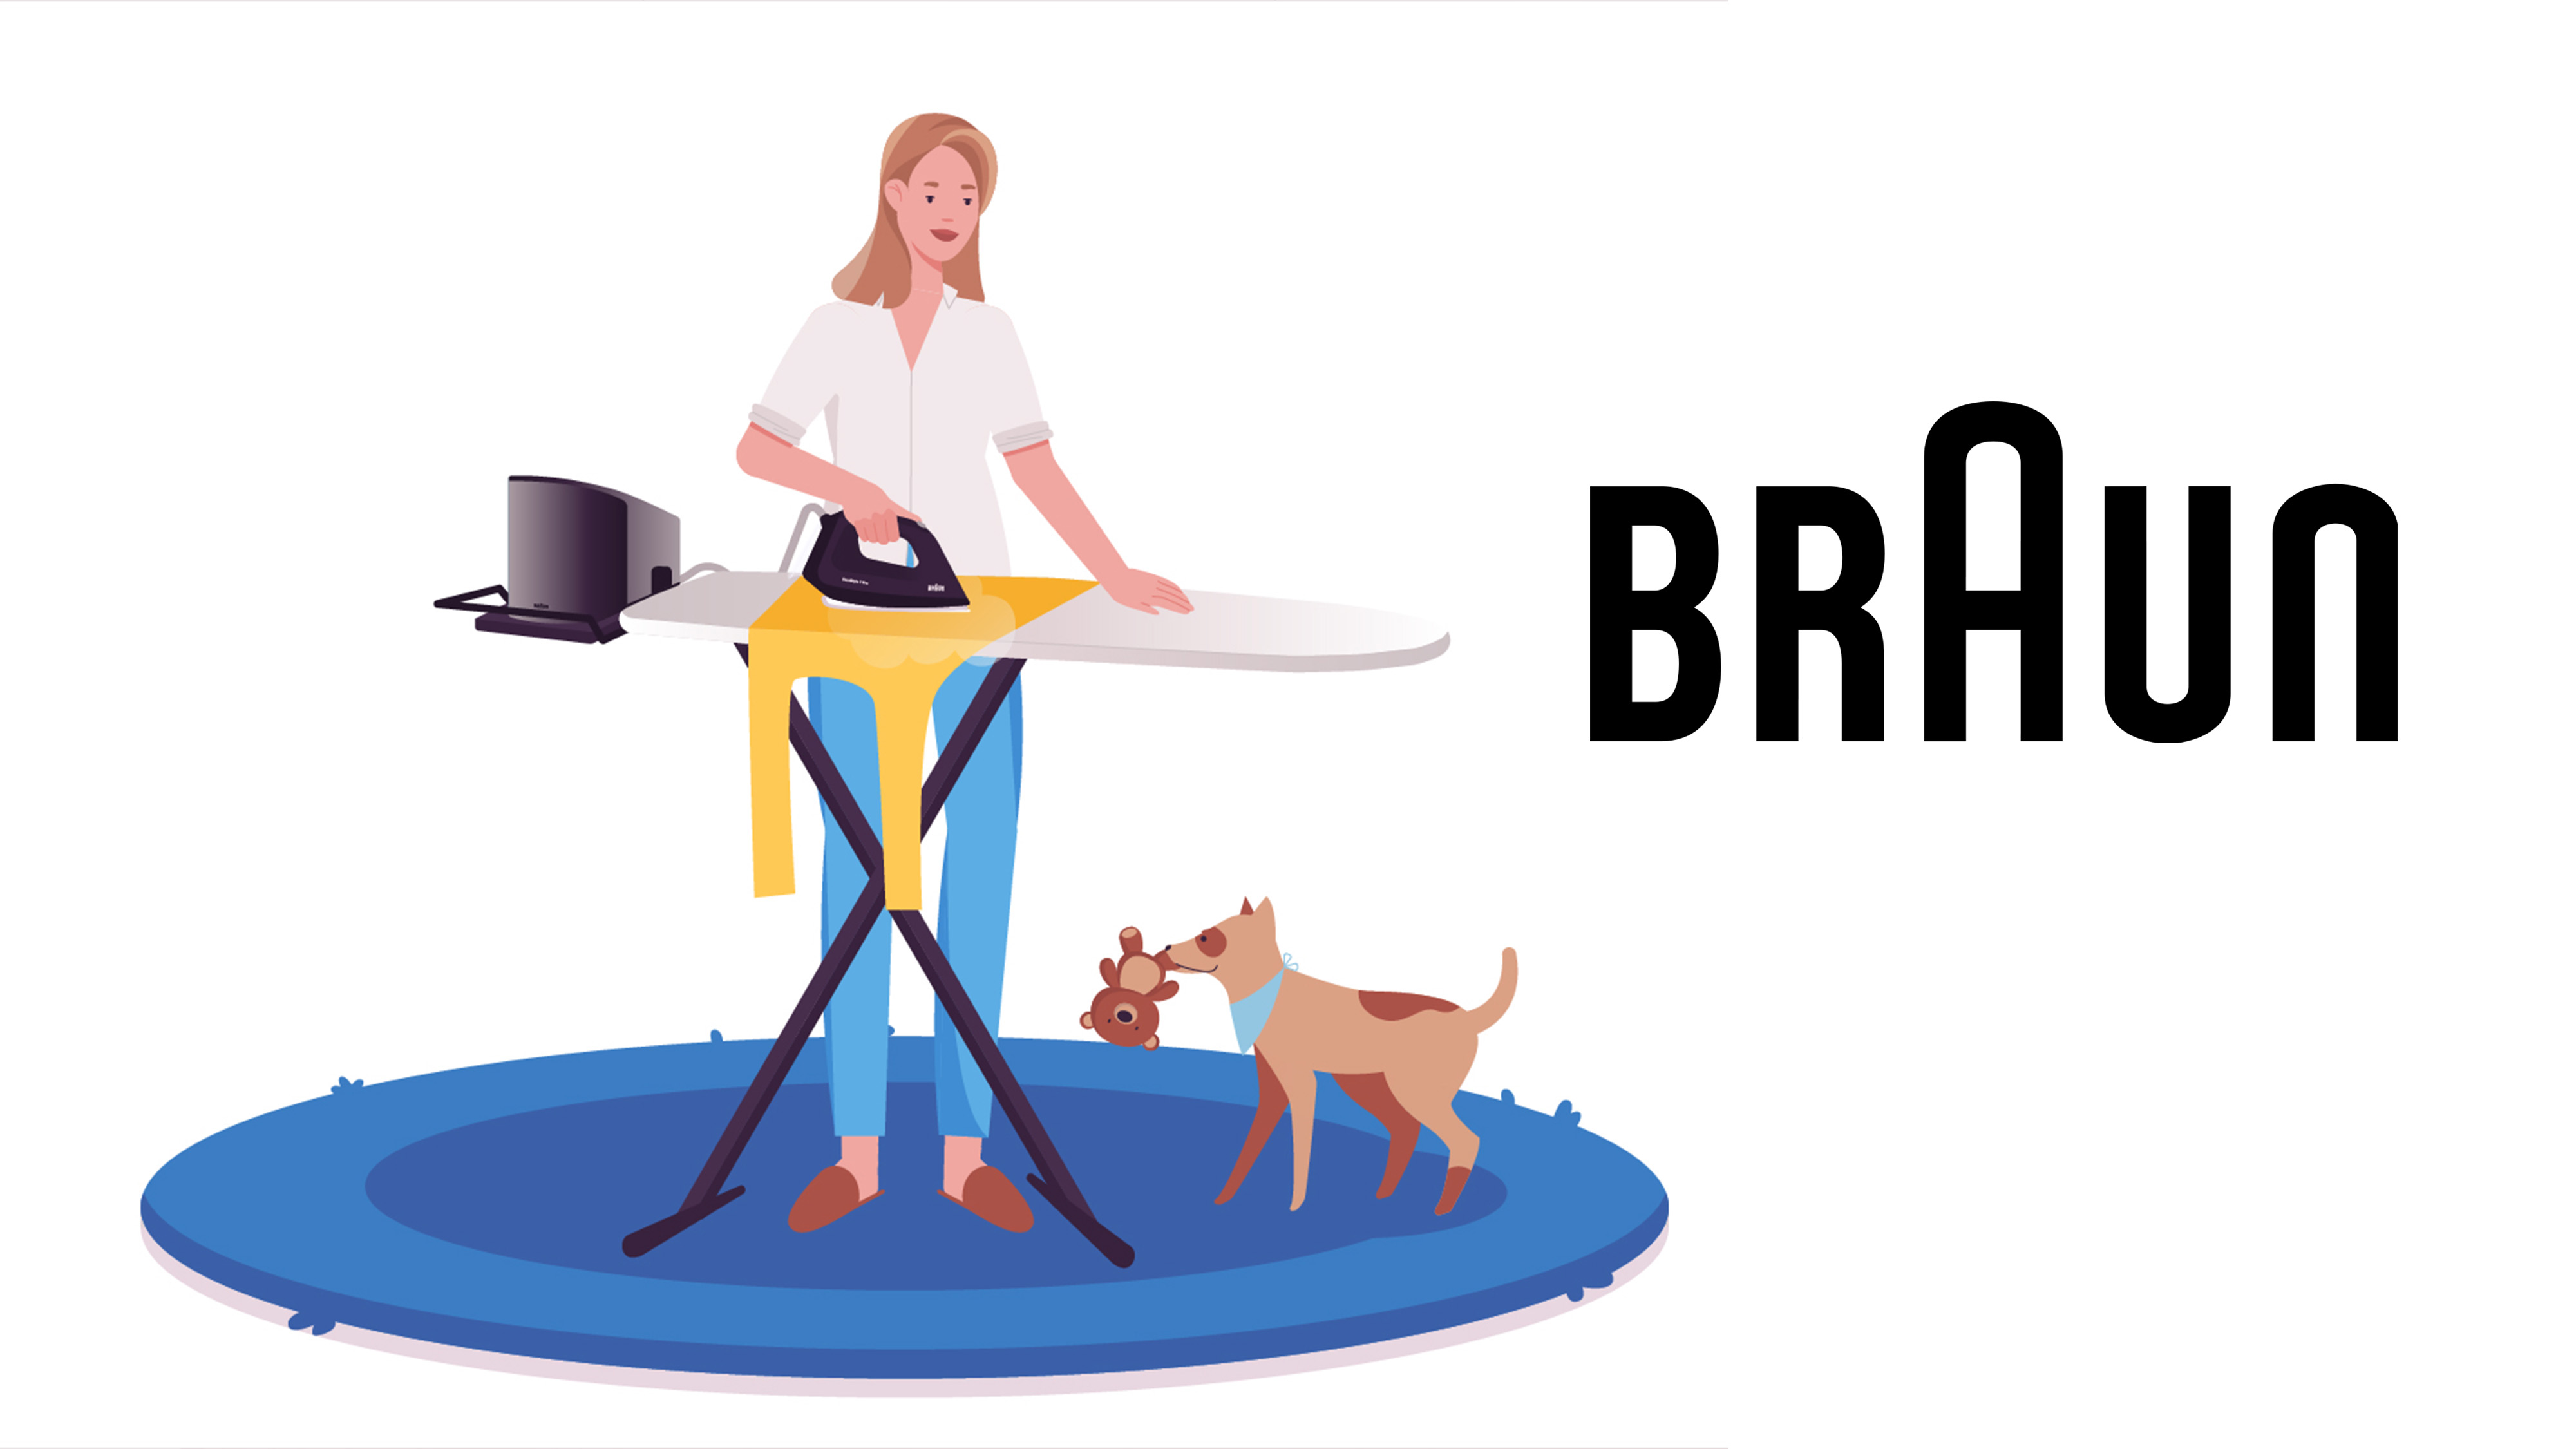 Braun Animated video commercial